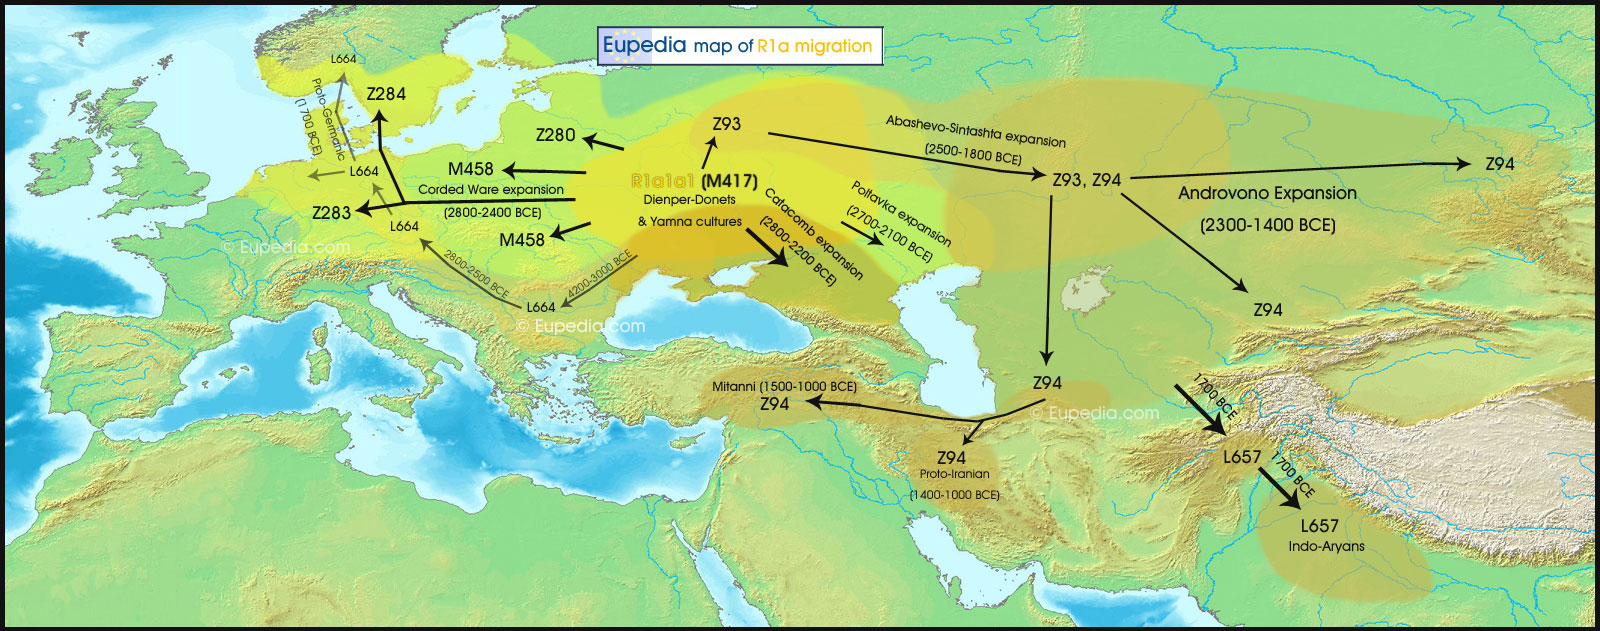 Migration map of Y-haplogroup R1b from the Neolithic to the late Bronze Age - Eupedia